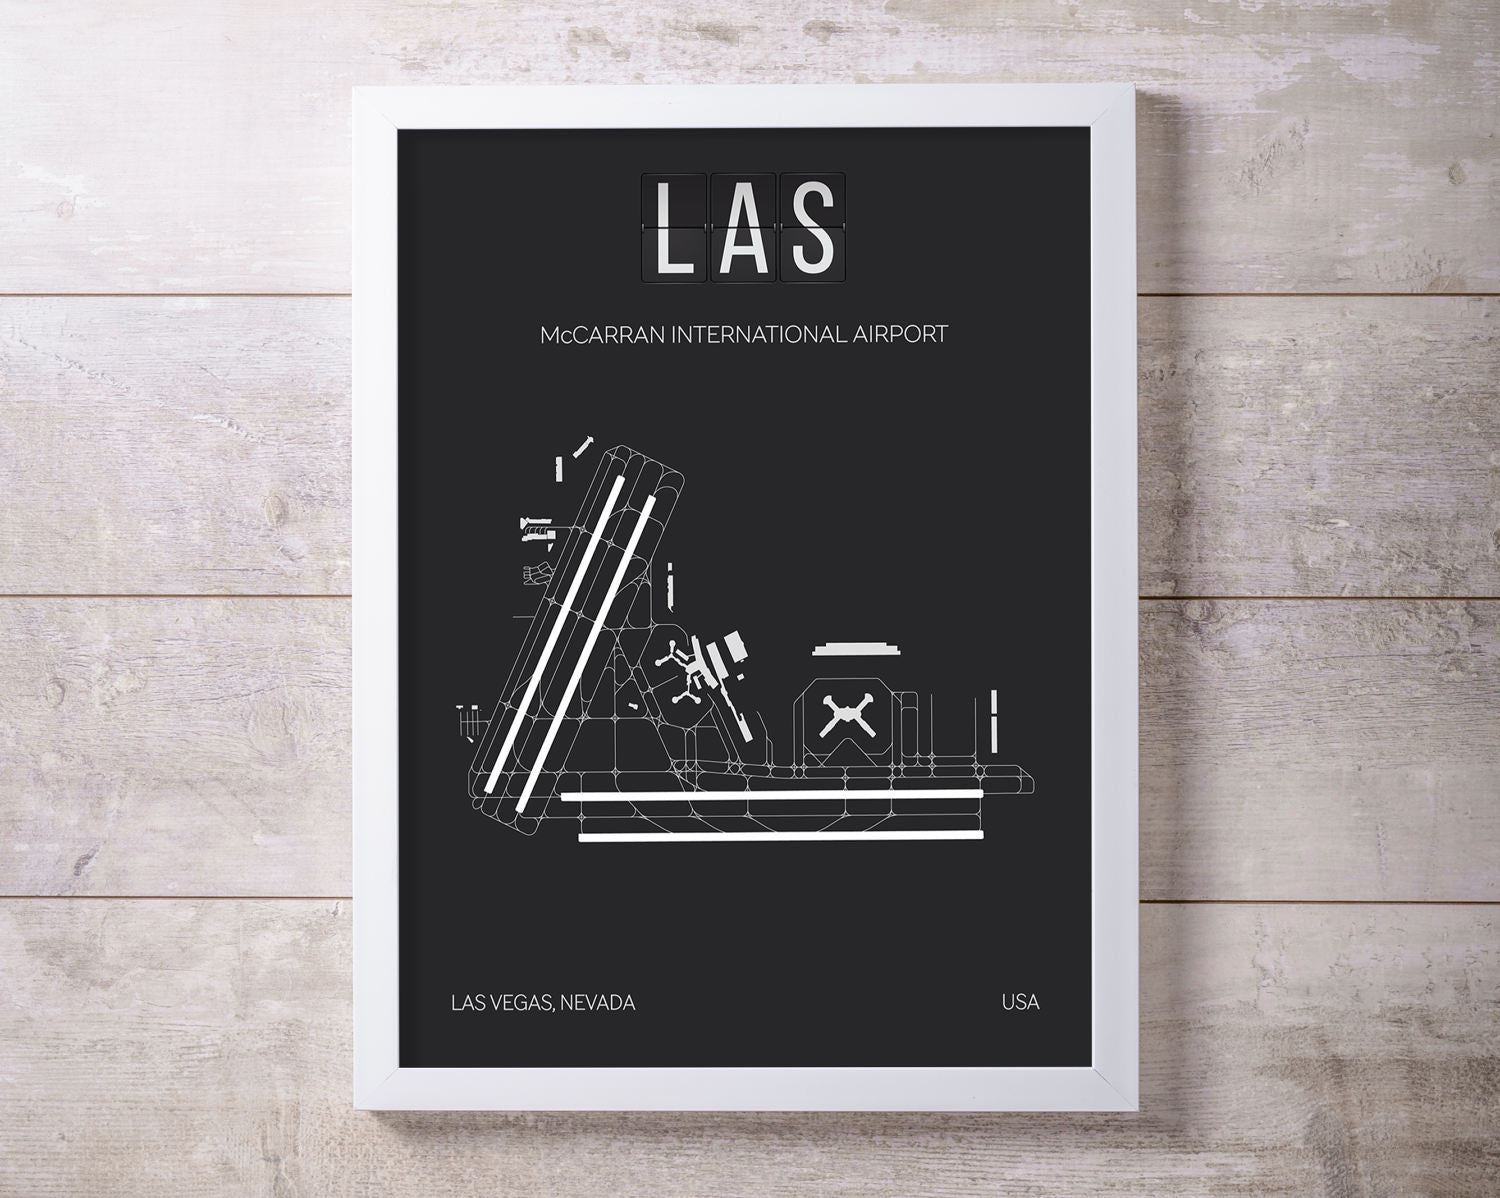 LAS Las Vegas McCarran International Airport Print Map Wall Art